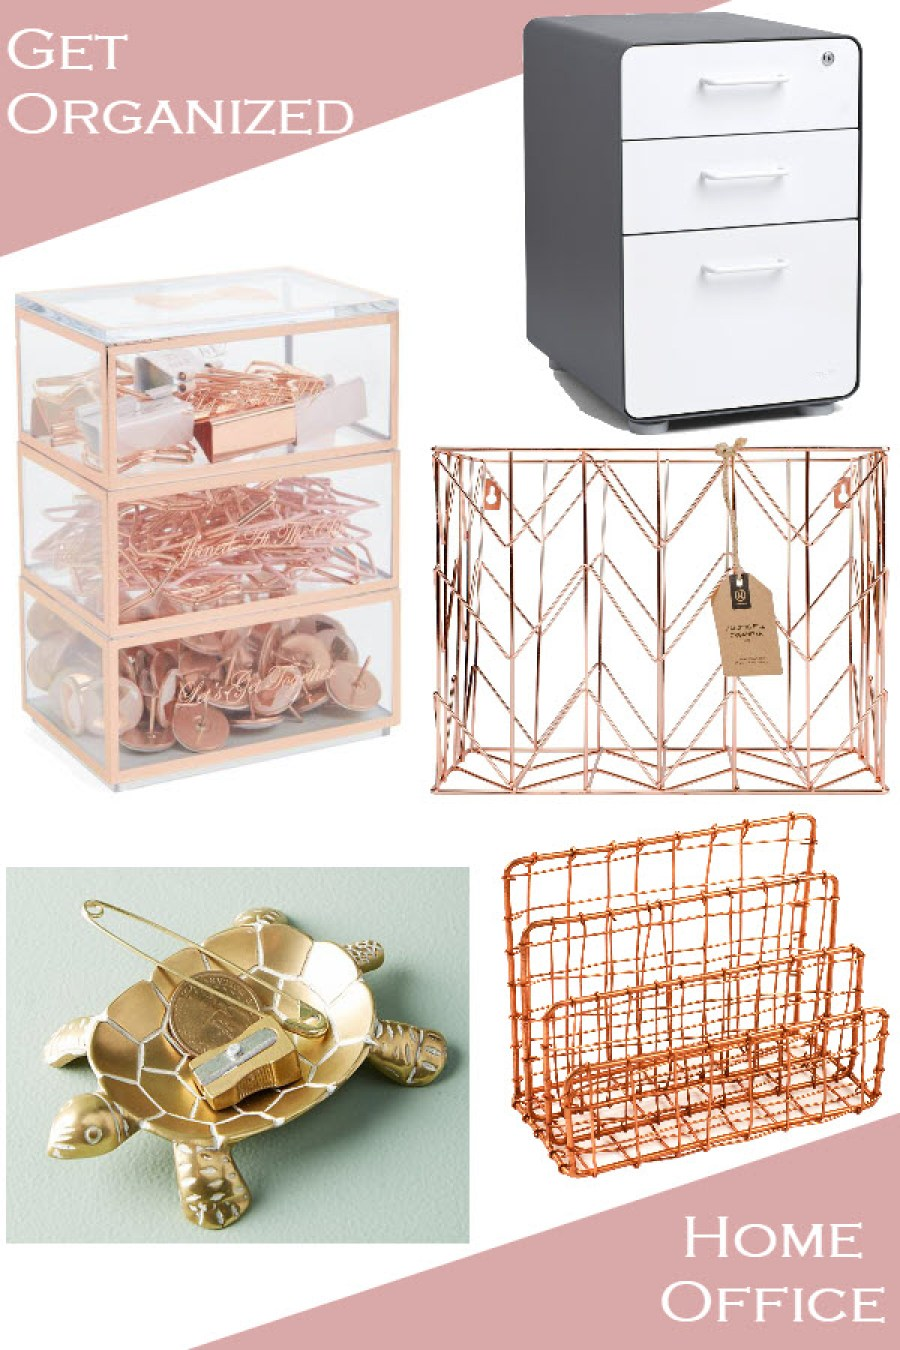 Chic Organization - Get Your Home Office Organized - Office Accessories